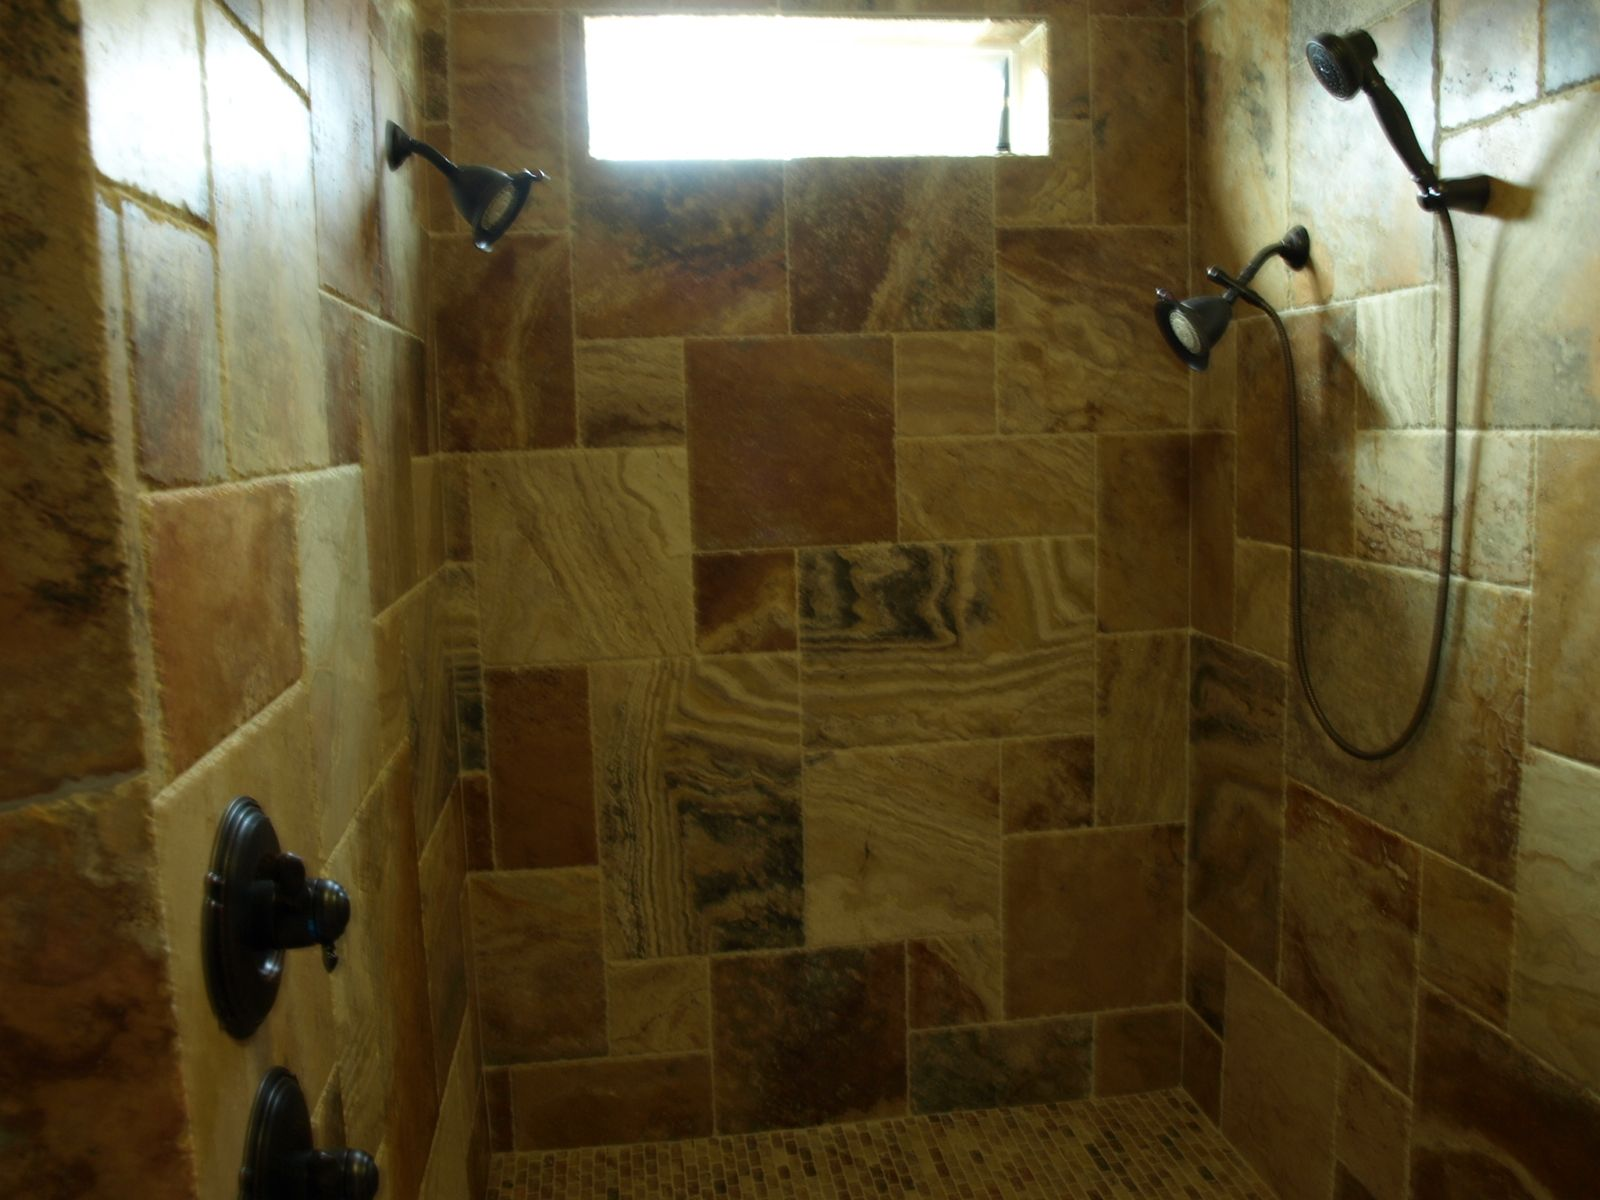 Read About This In A Booktwo Shower Heads One On Each Wall Amazing How Much Does A Small Bathroom Remodel Cost Inspiration Design